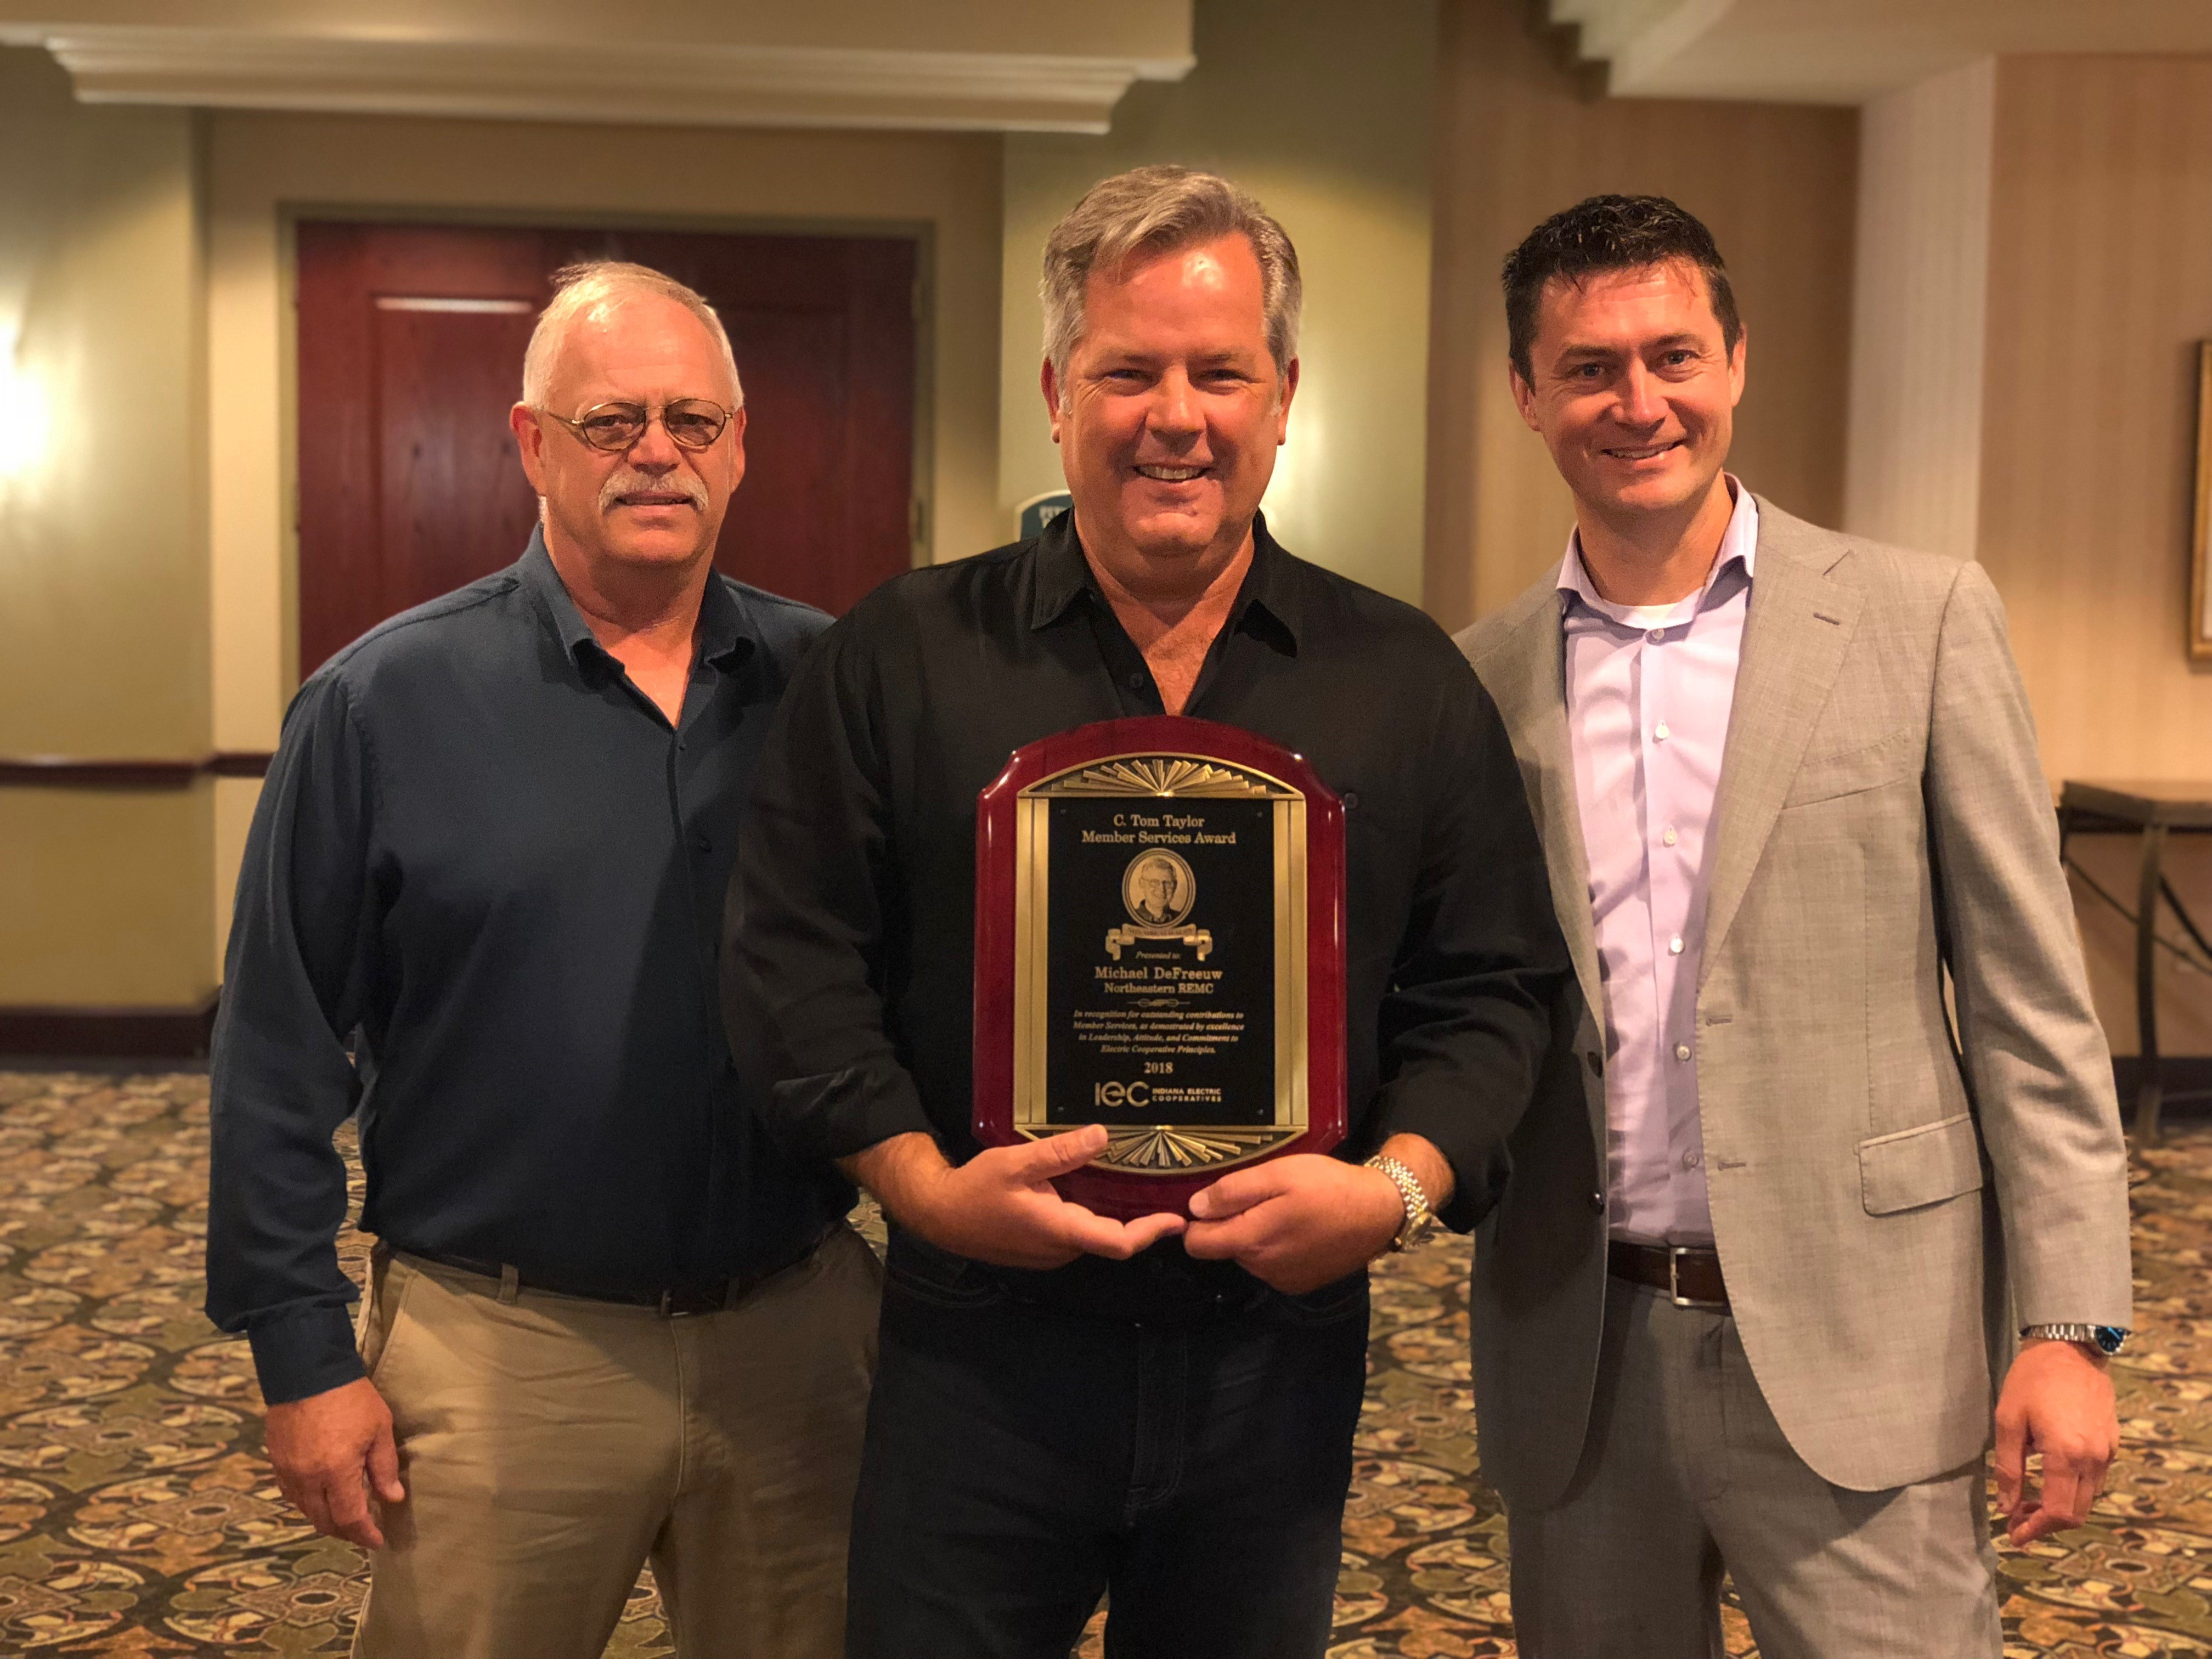 Www Tom Taylor De Tom Taylor Award Defreeuw Indiana Electric Cooperatives